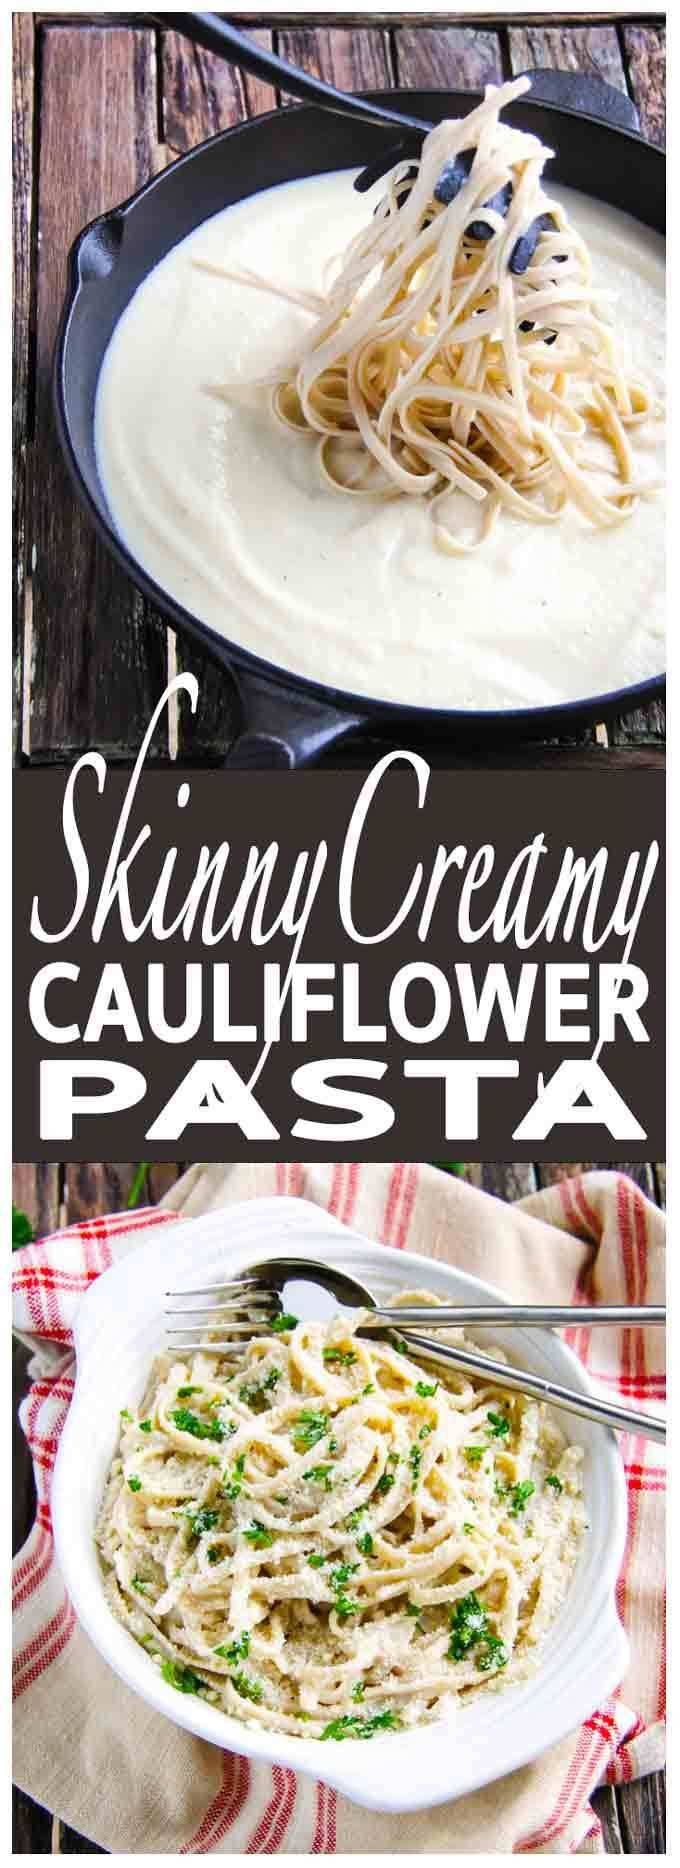 Healthy, Skinny Creamy Cauliflower Pasta is a delicious, comfort food at its best - easy, diverse gluten free, vegan sauce for pasta or rice.